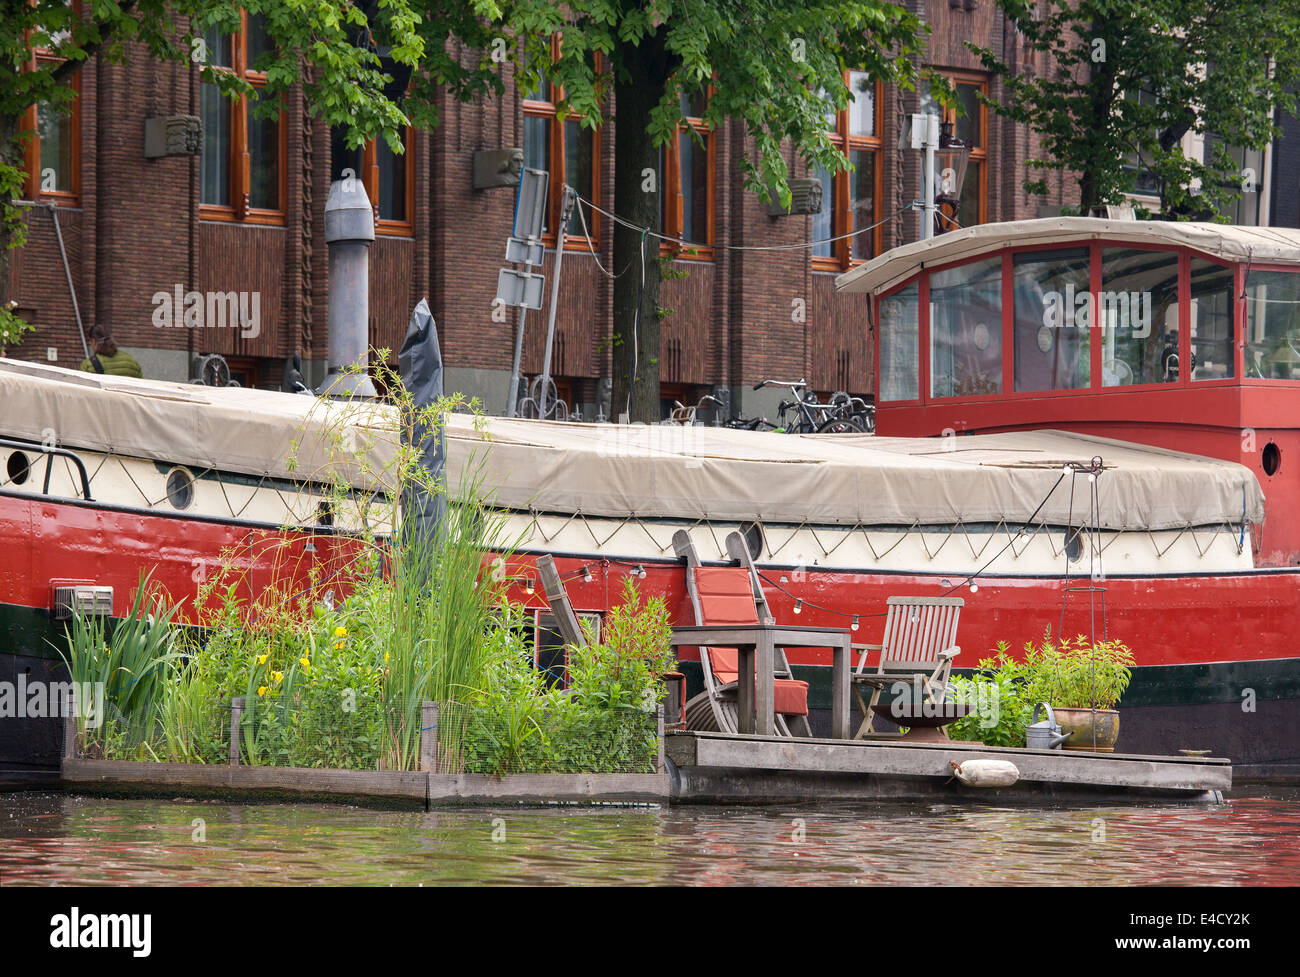 Amsterdam barge house boat with floating garden in the Kromme Waal Canal next to the Amrath Hotel - Stock Image